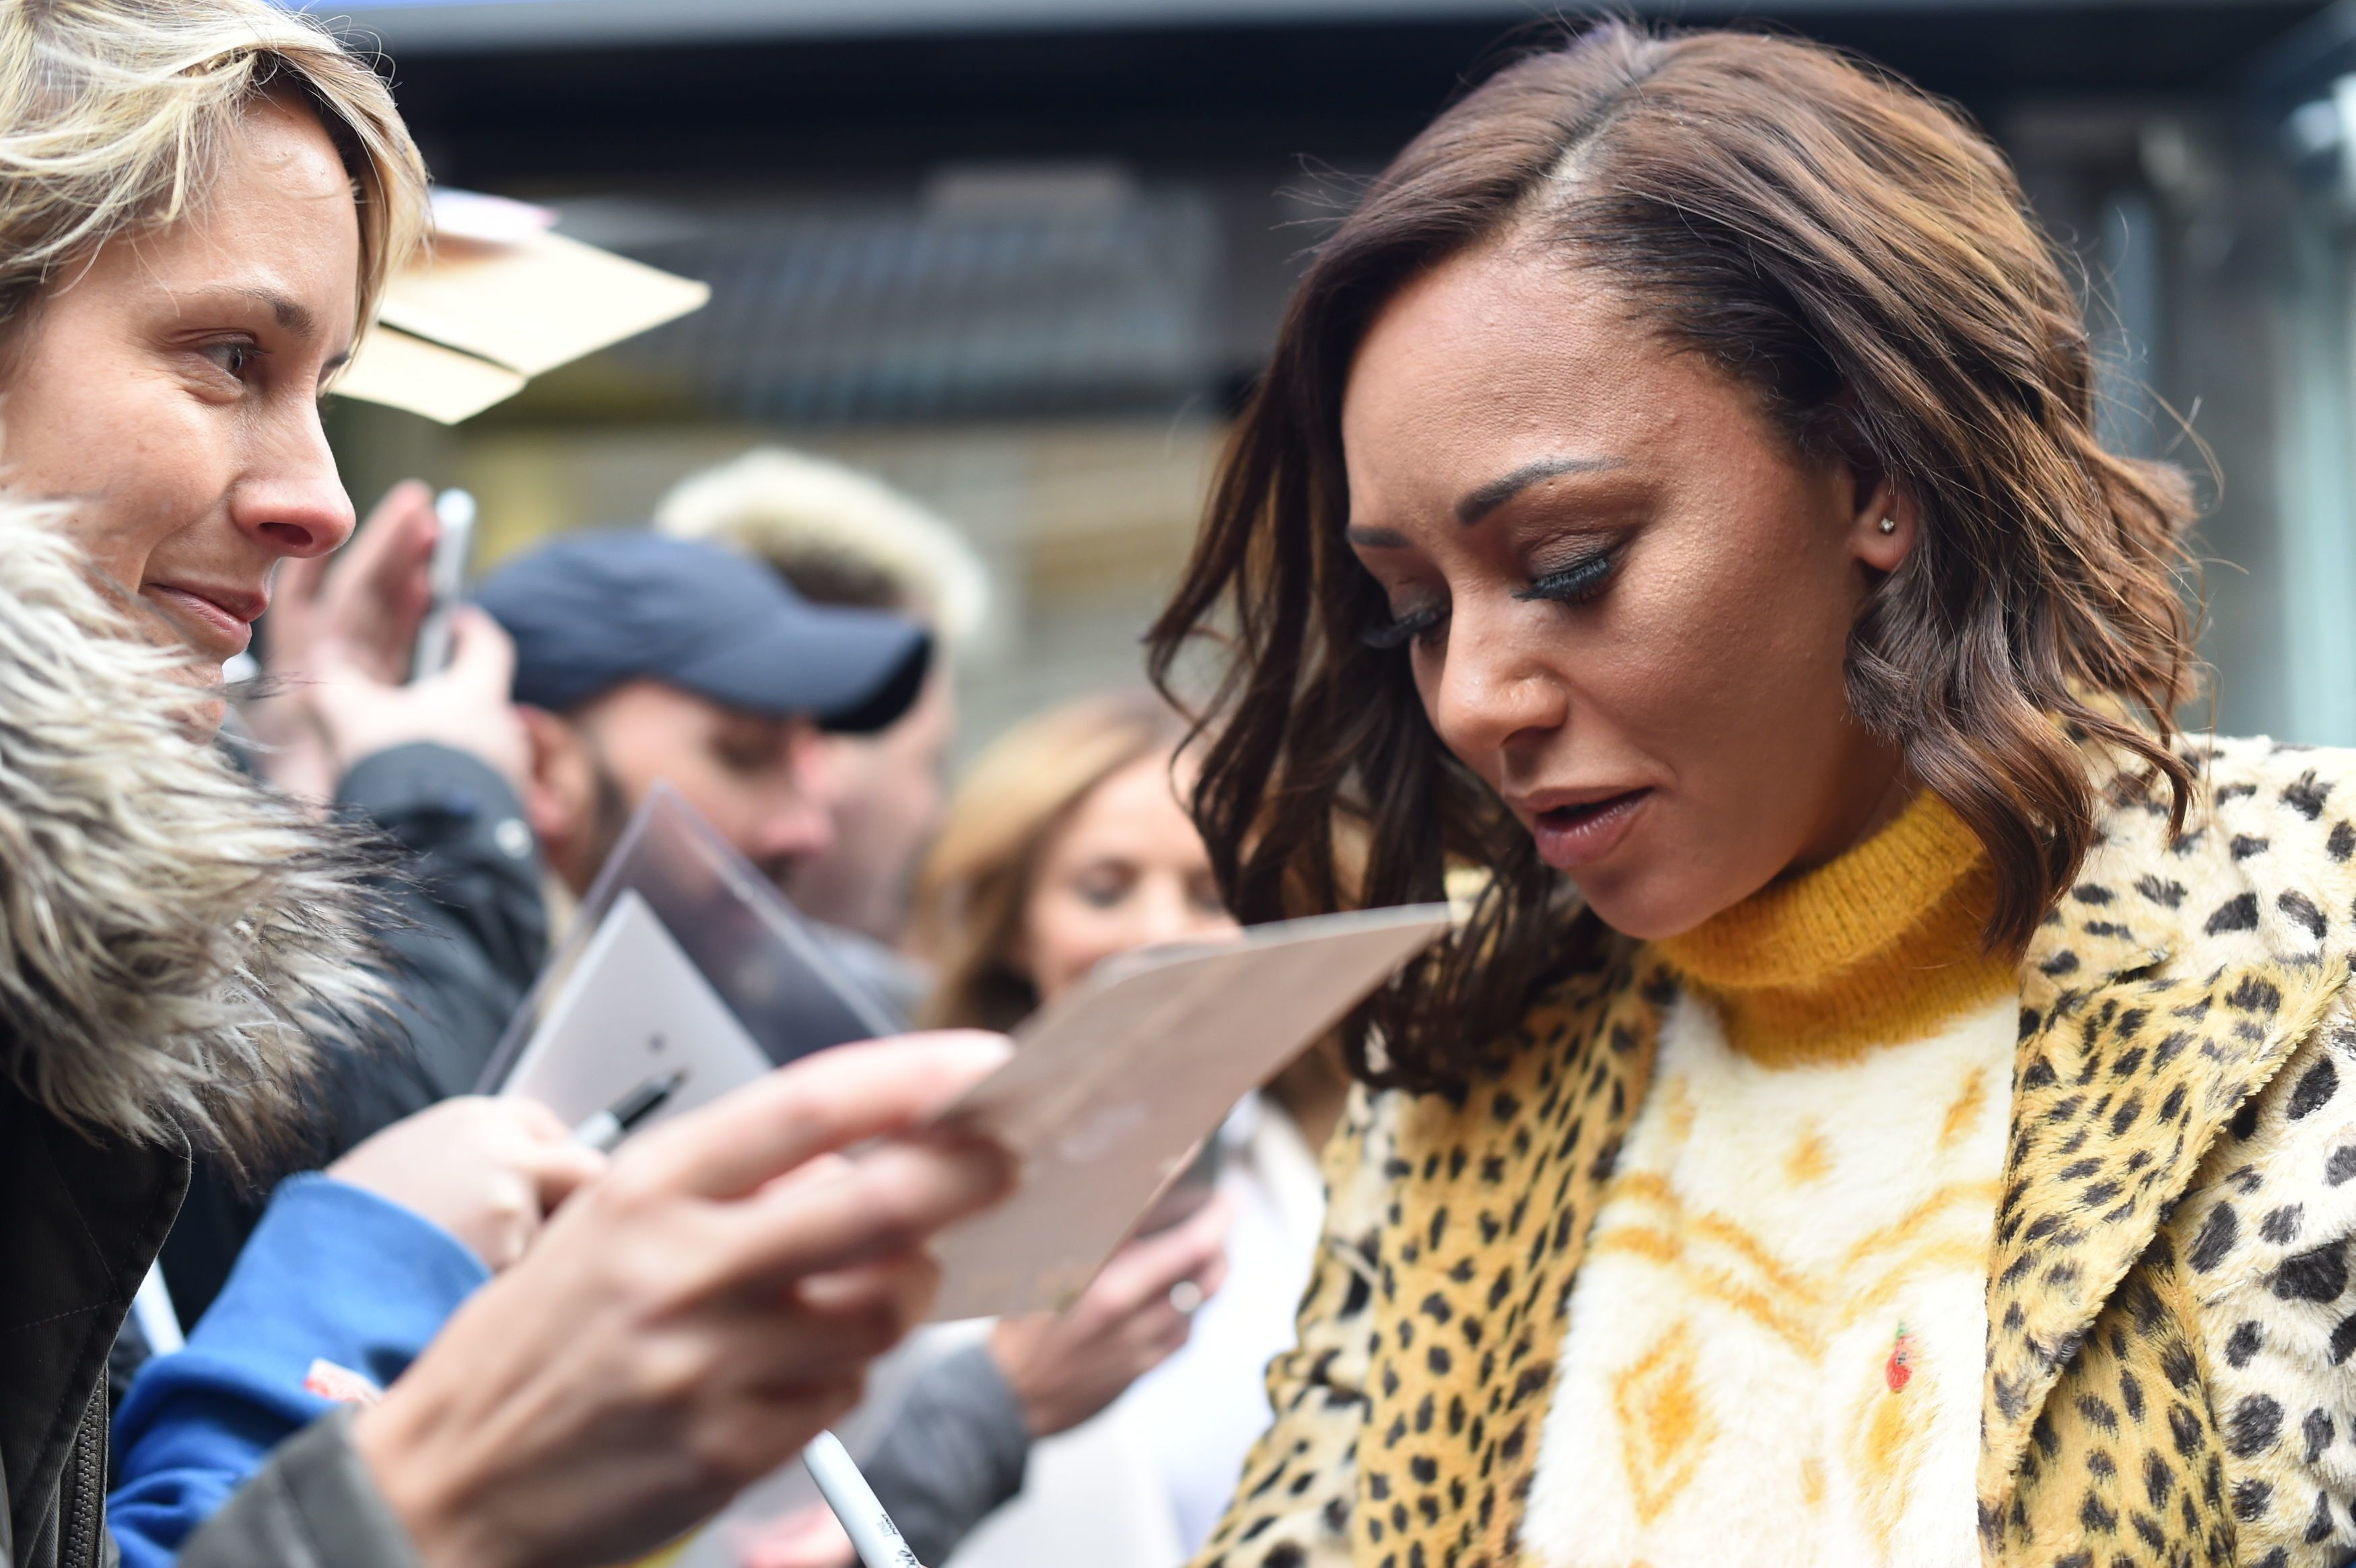 Mel B Slams 'Dangerous' And 'Sick' Person Who 'Deliberately' Slashed Her